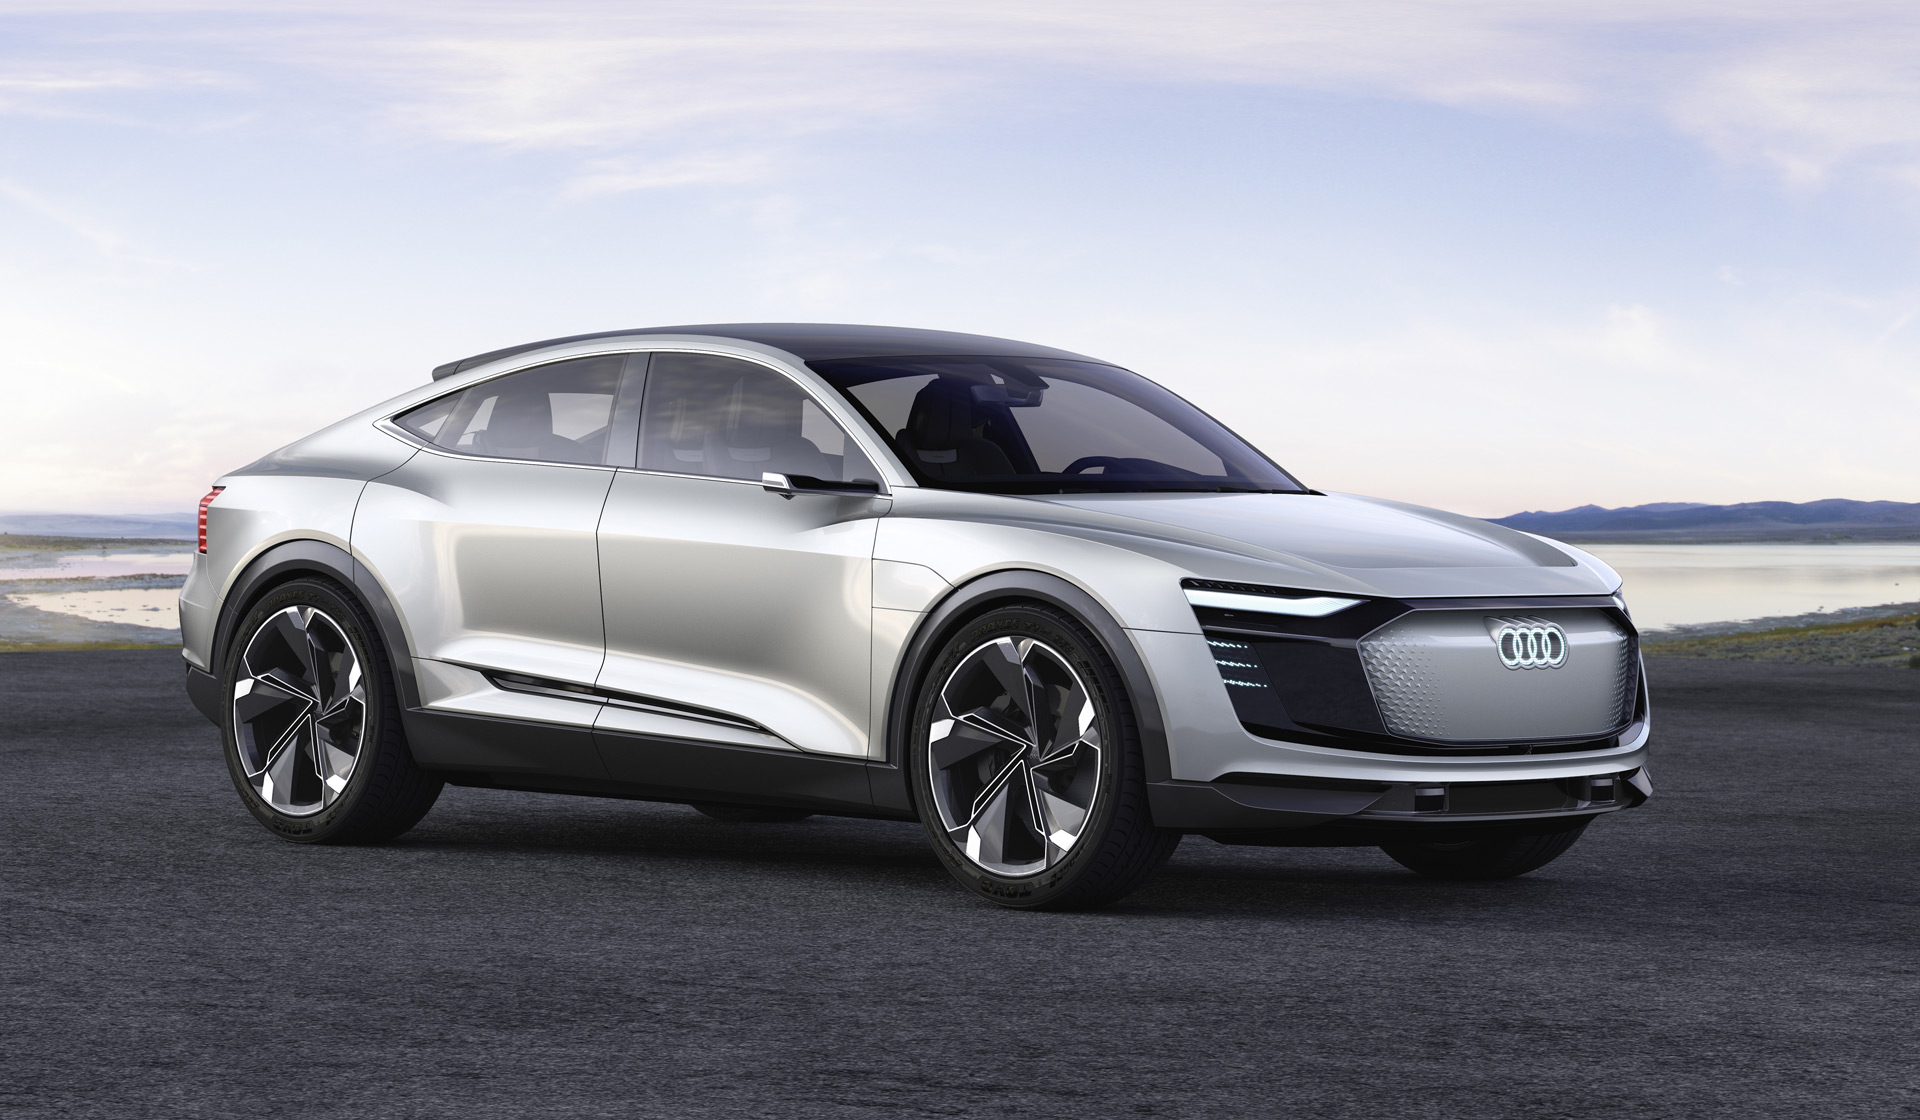 Audi's Plan to Go Electric